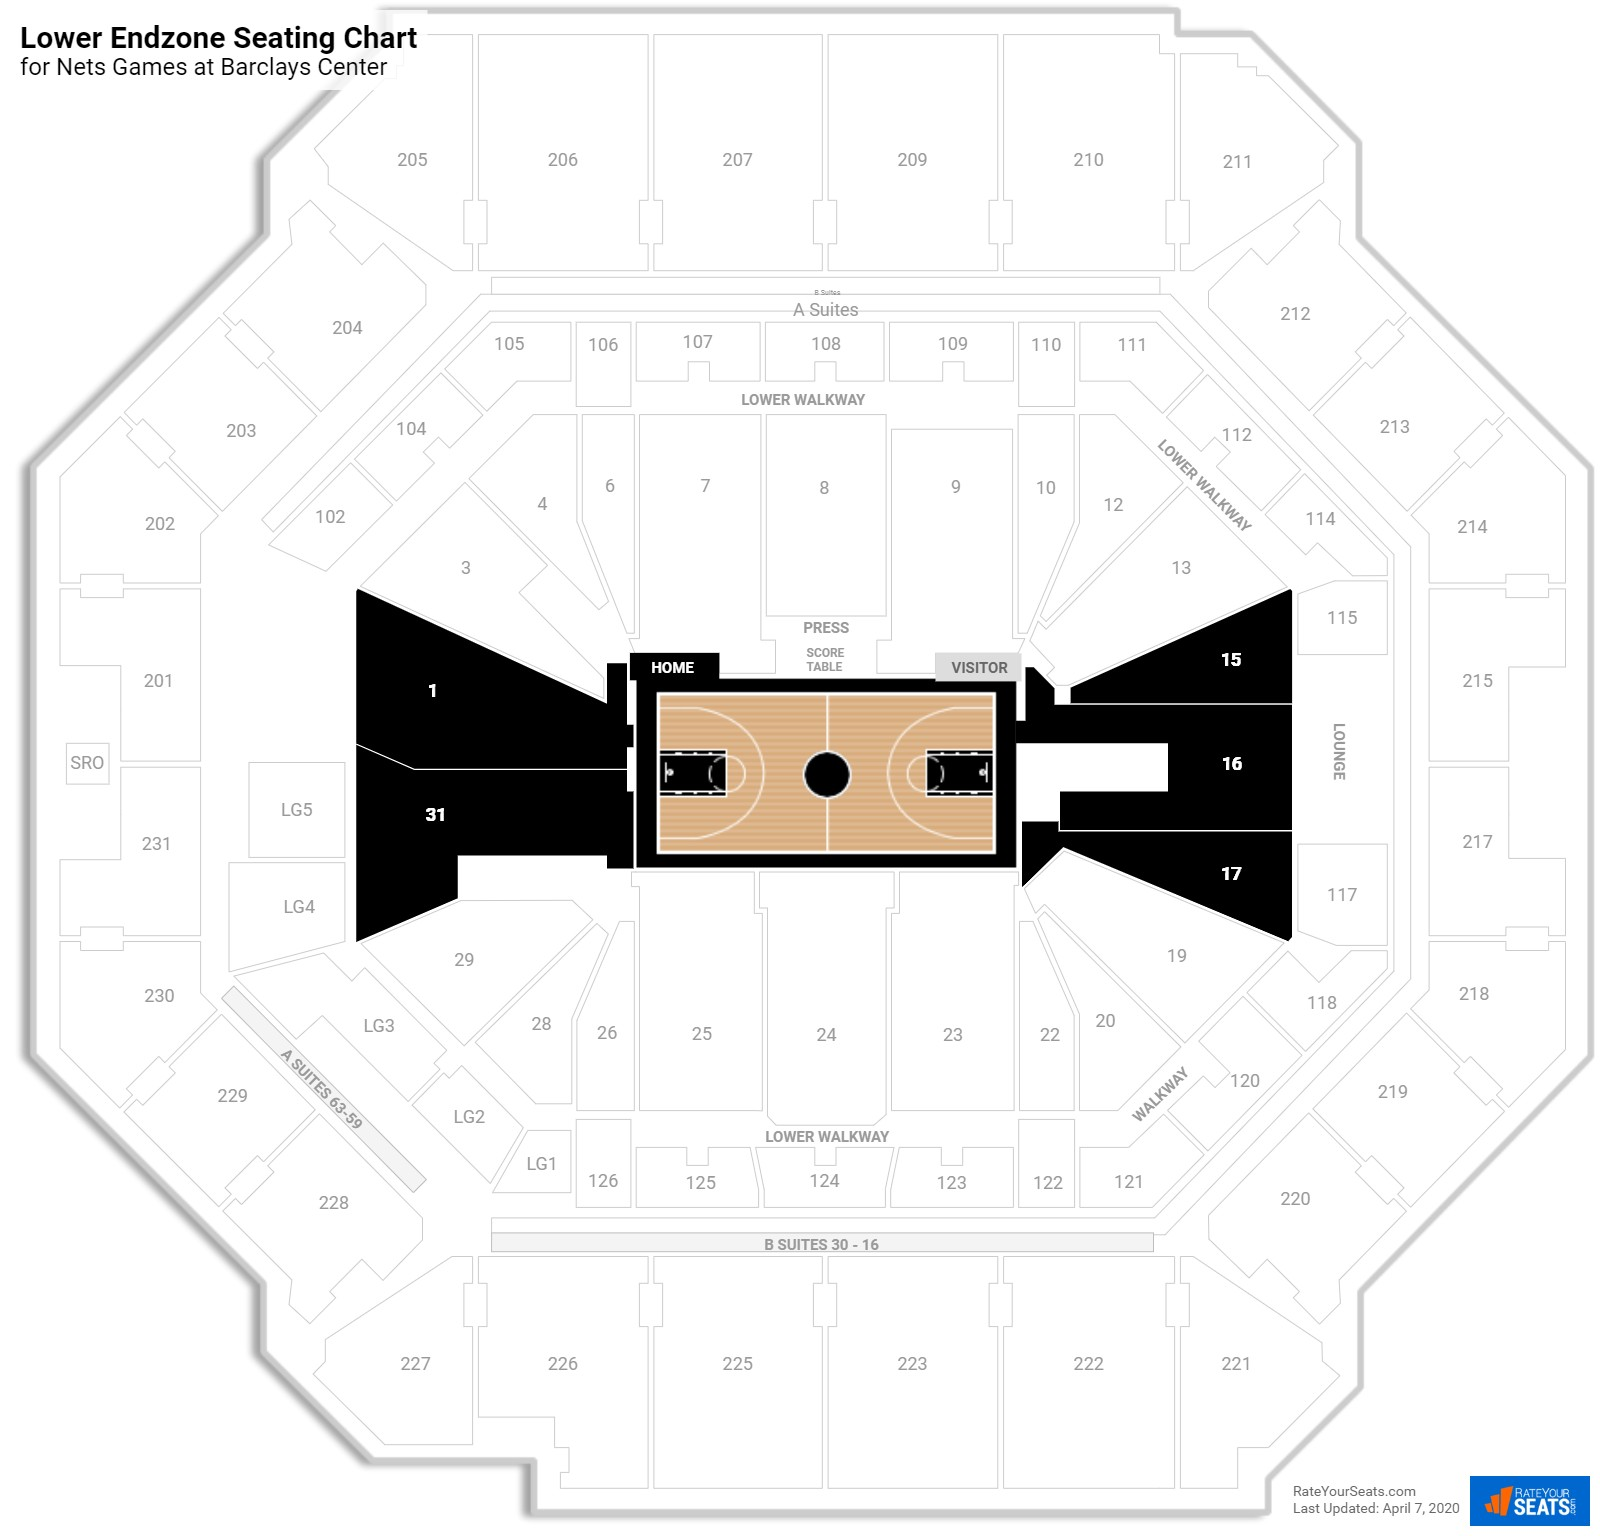 Barclays Center Lower Level Baseline seating chart